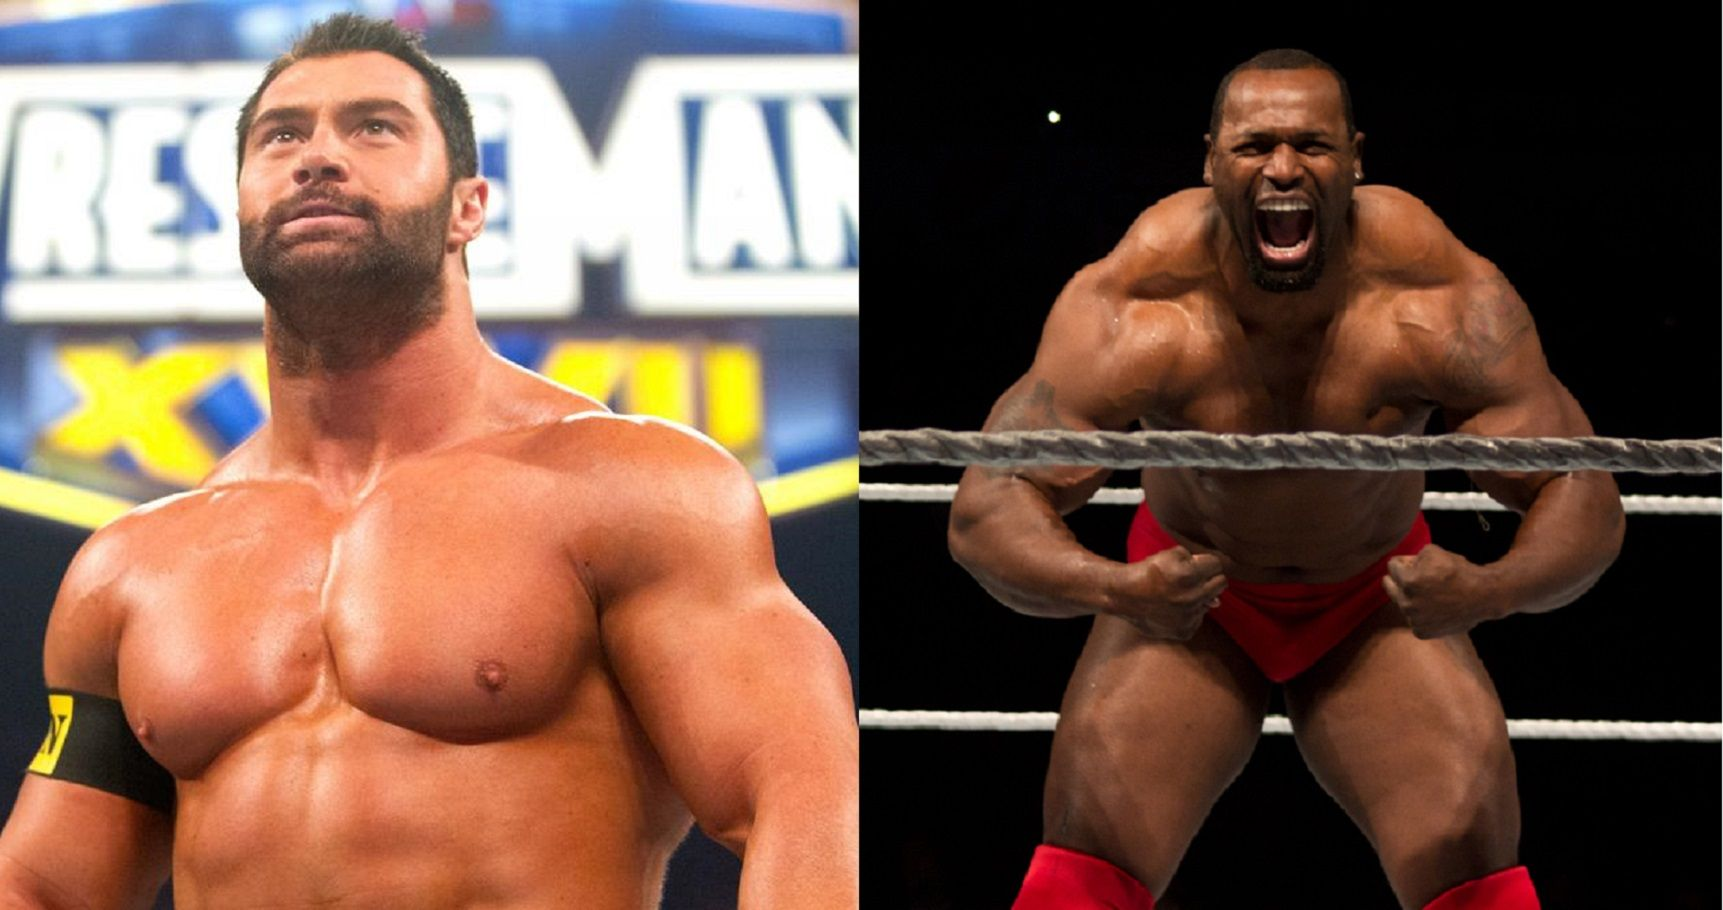 17 Muscleheads The WWE Wants You To Forget